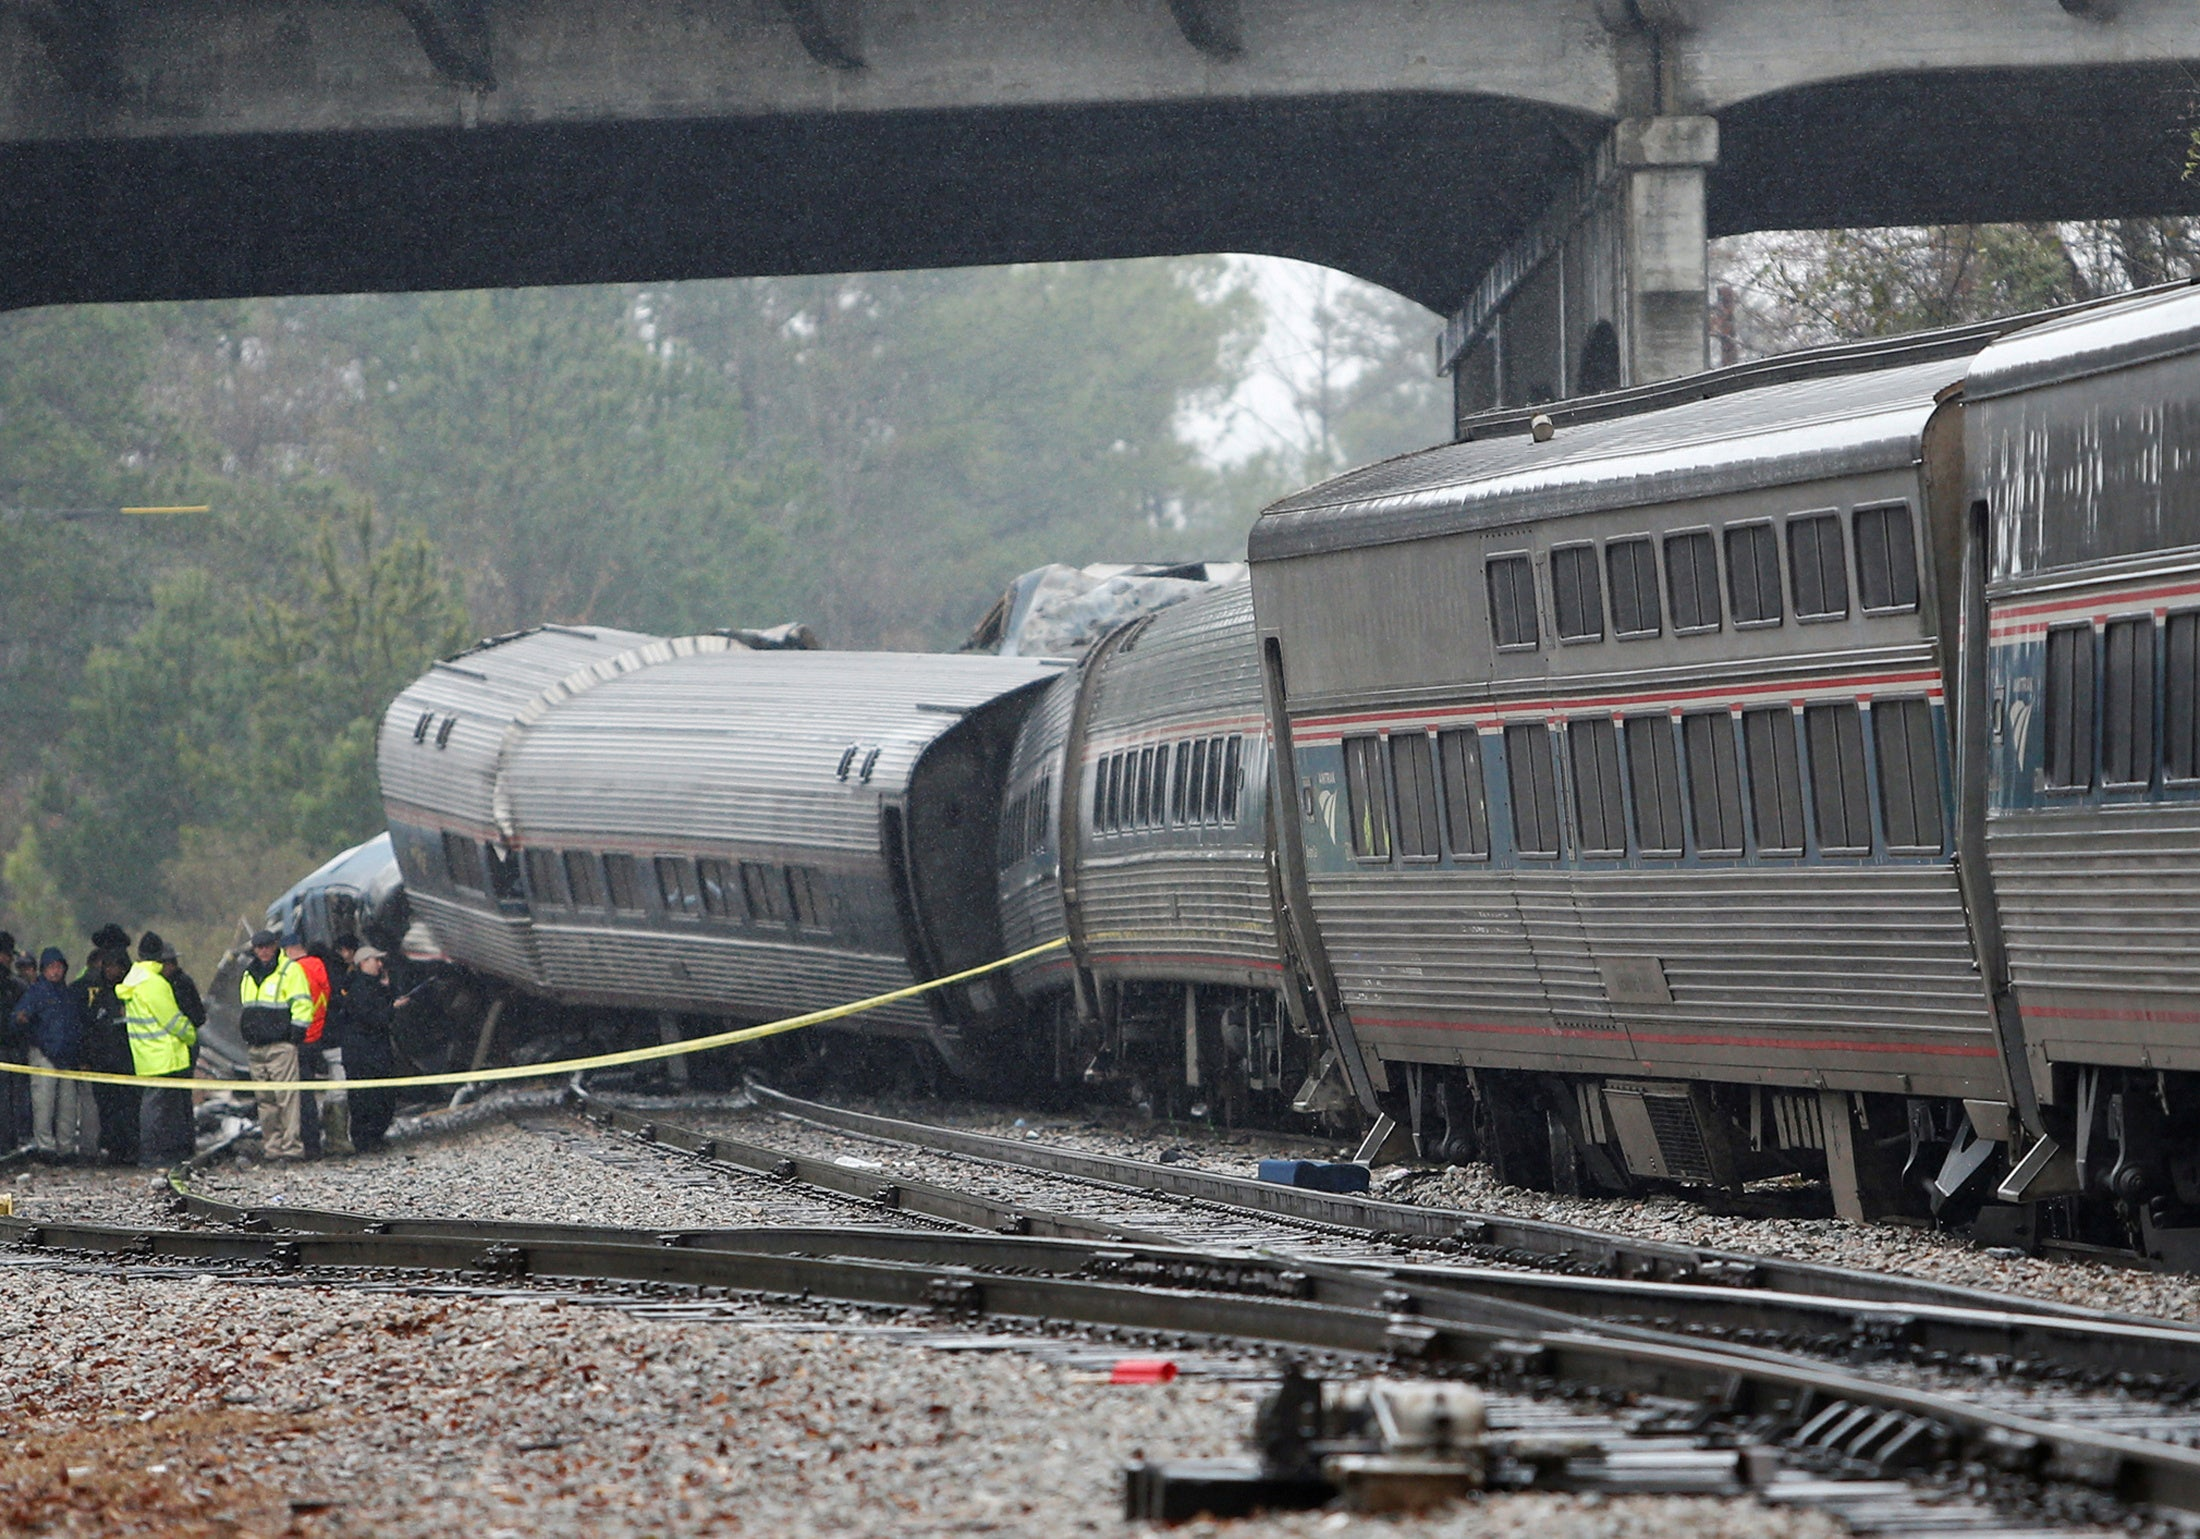 Emergency responders are at the scene after an Amtrak passenger train collided with a freight train and derailed in Cayce, South Carolina on February 4, 2018.